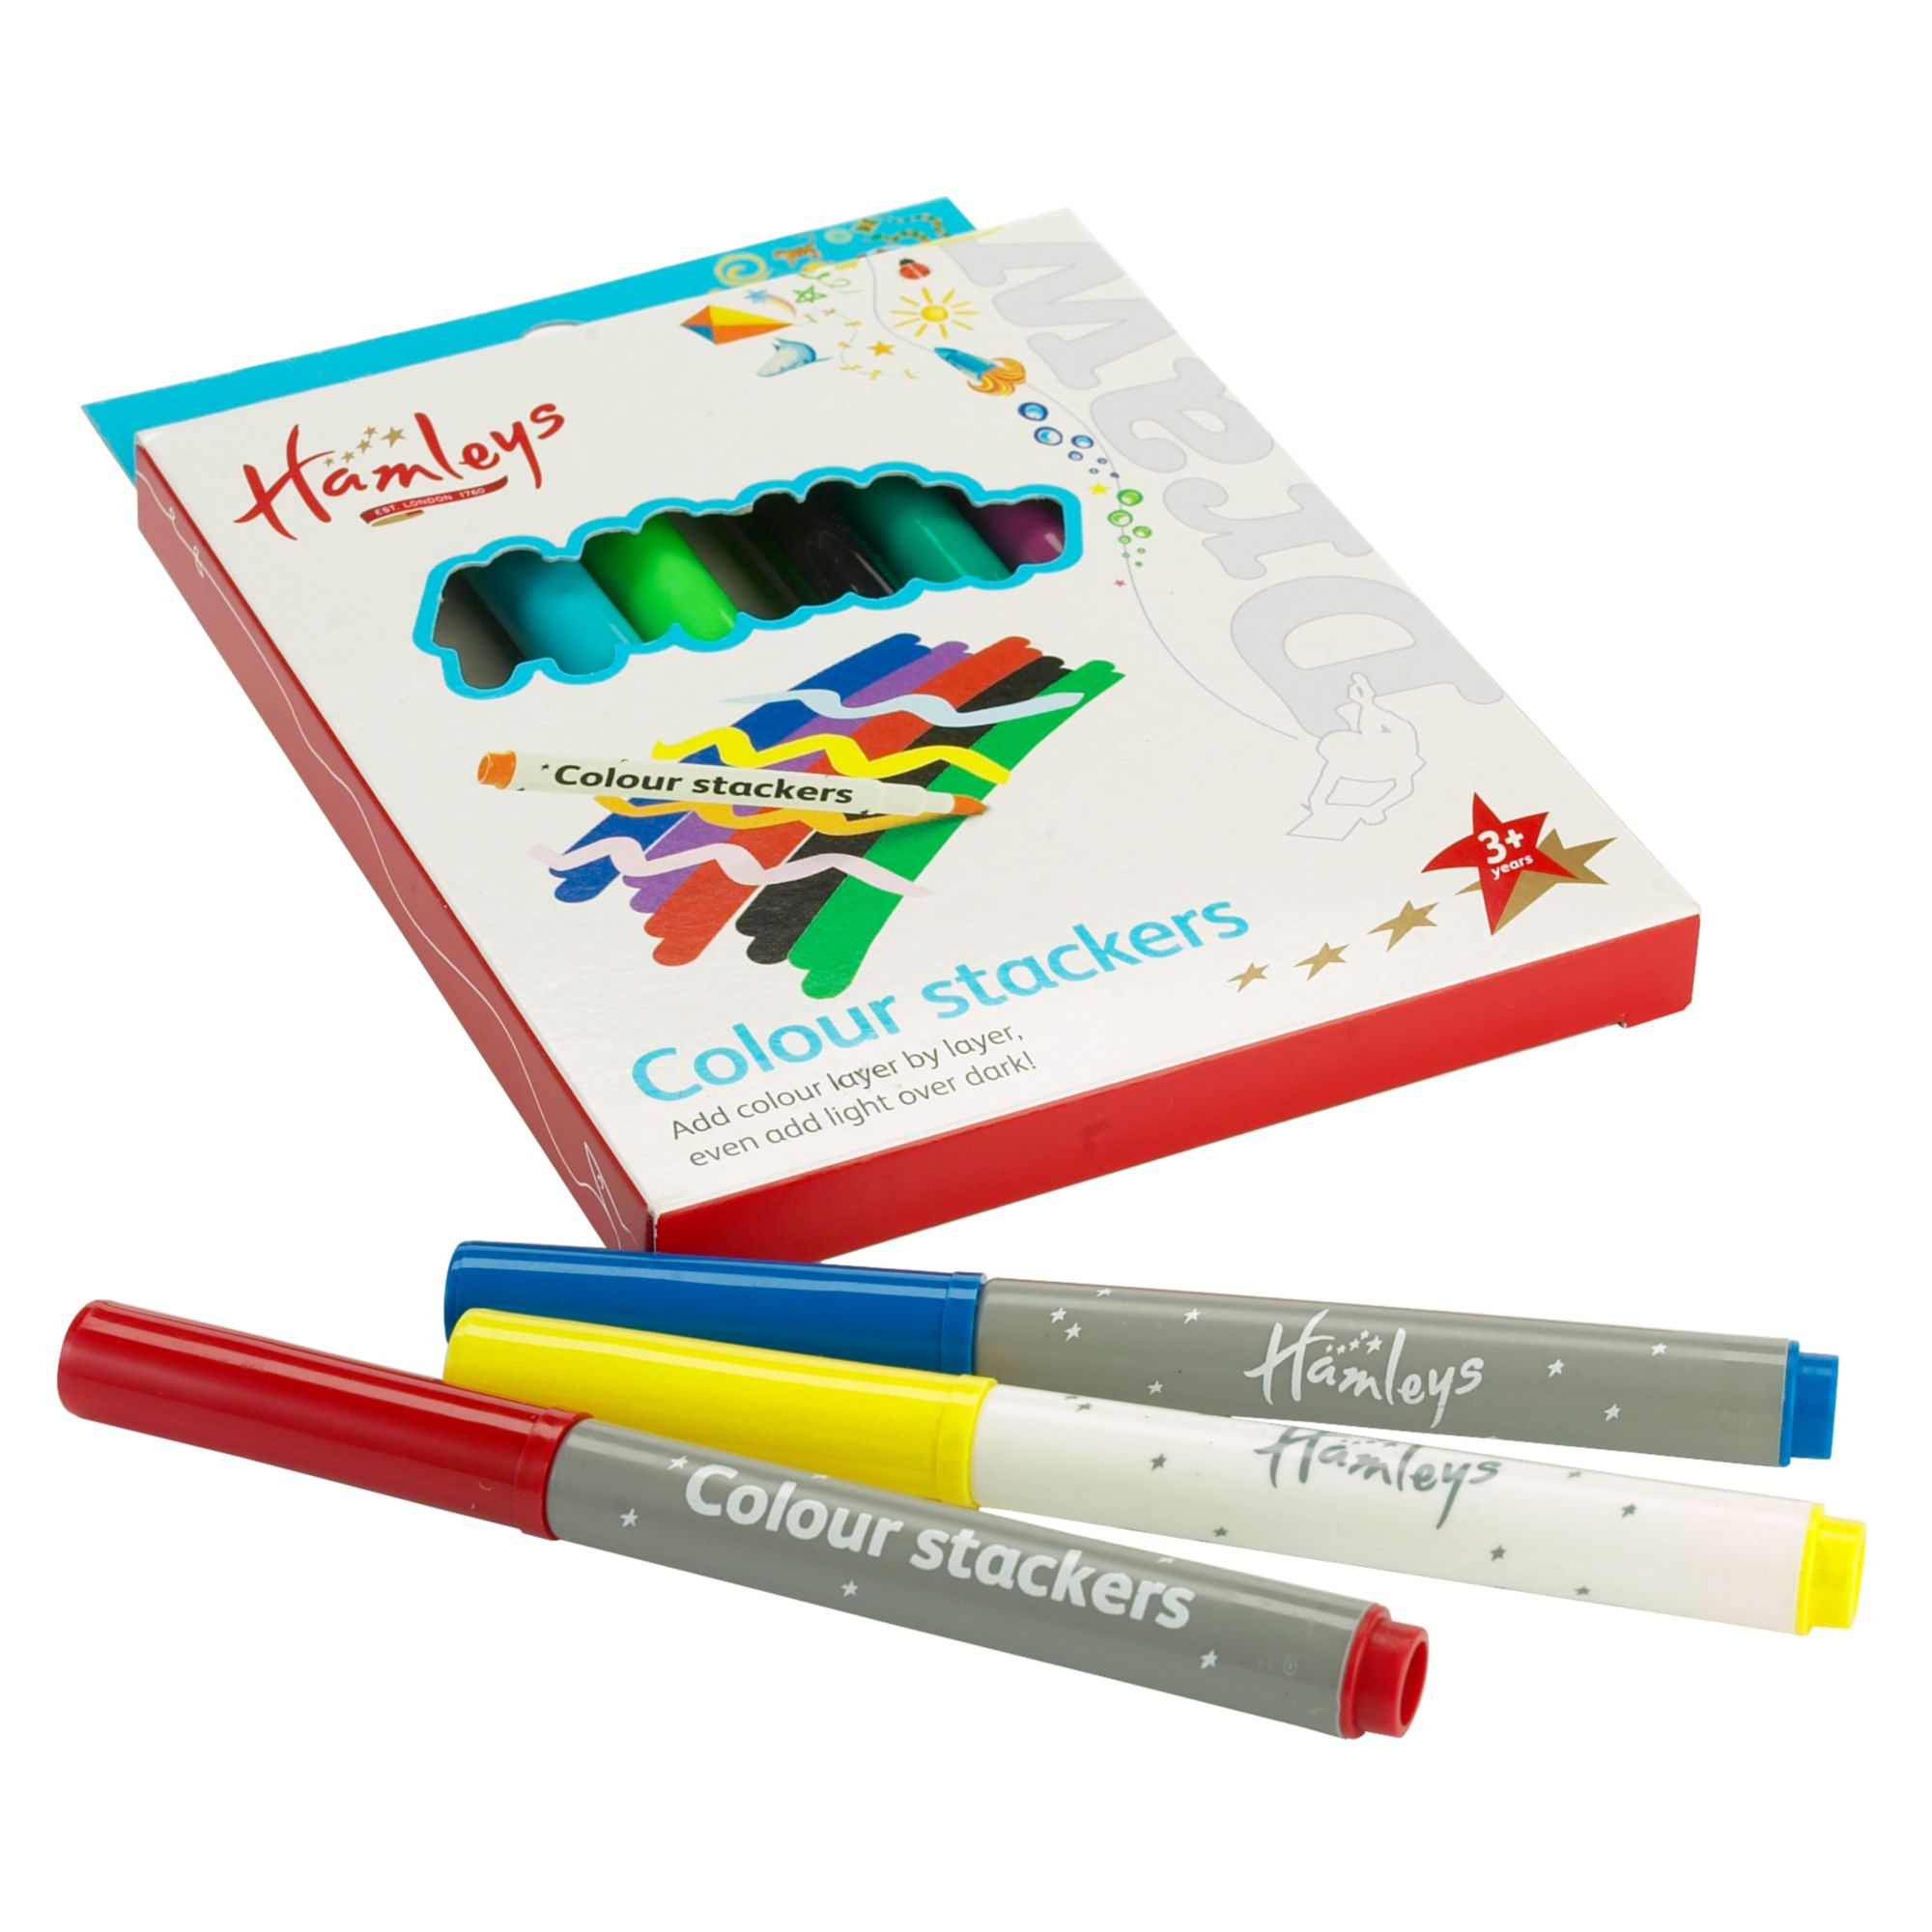 Colour stacker pens